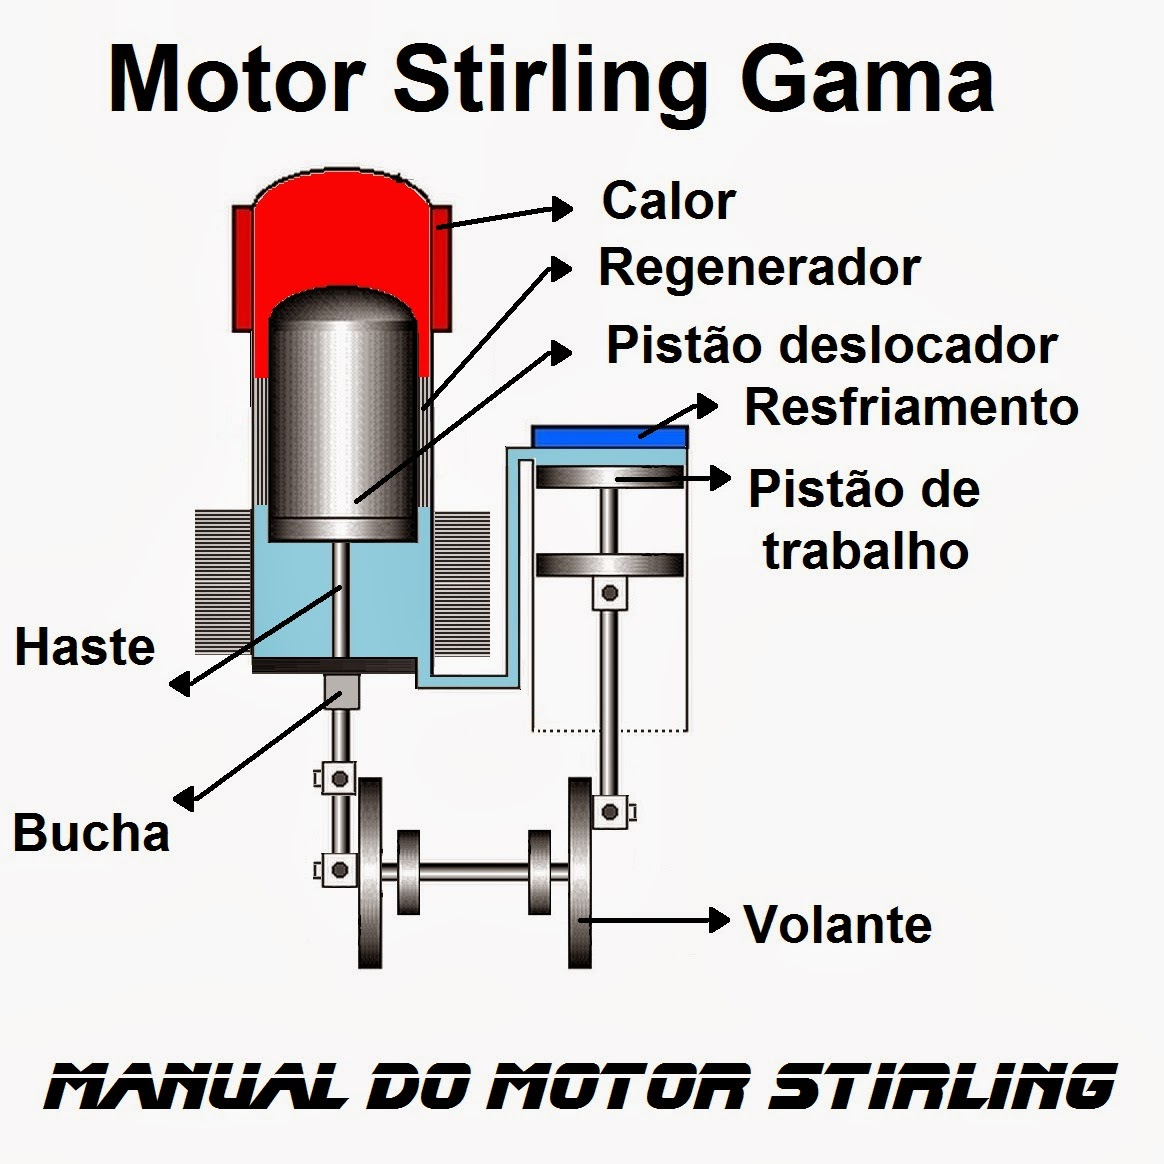 Manual do motor Stilring, Motor Stirling Gama